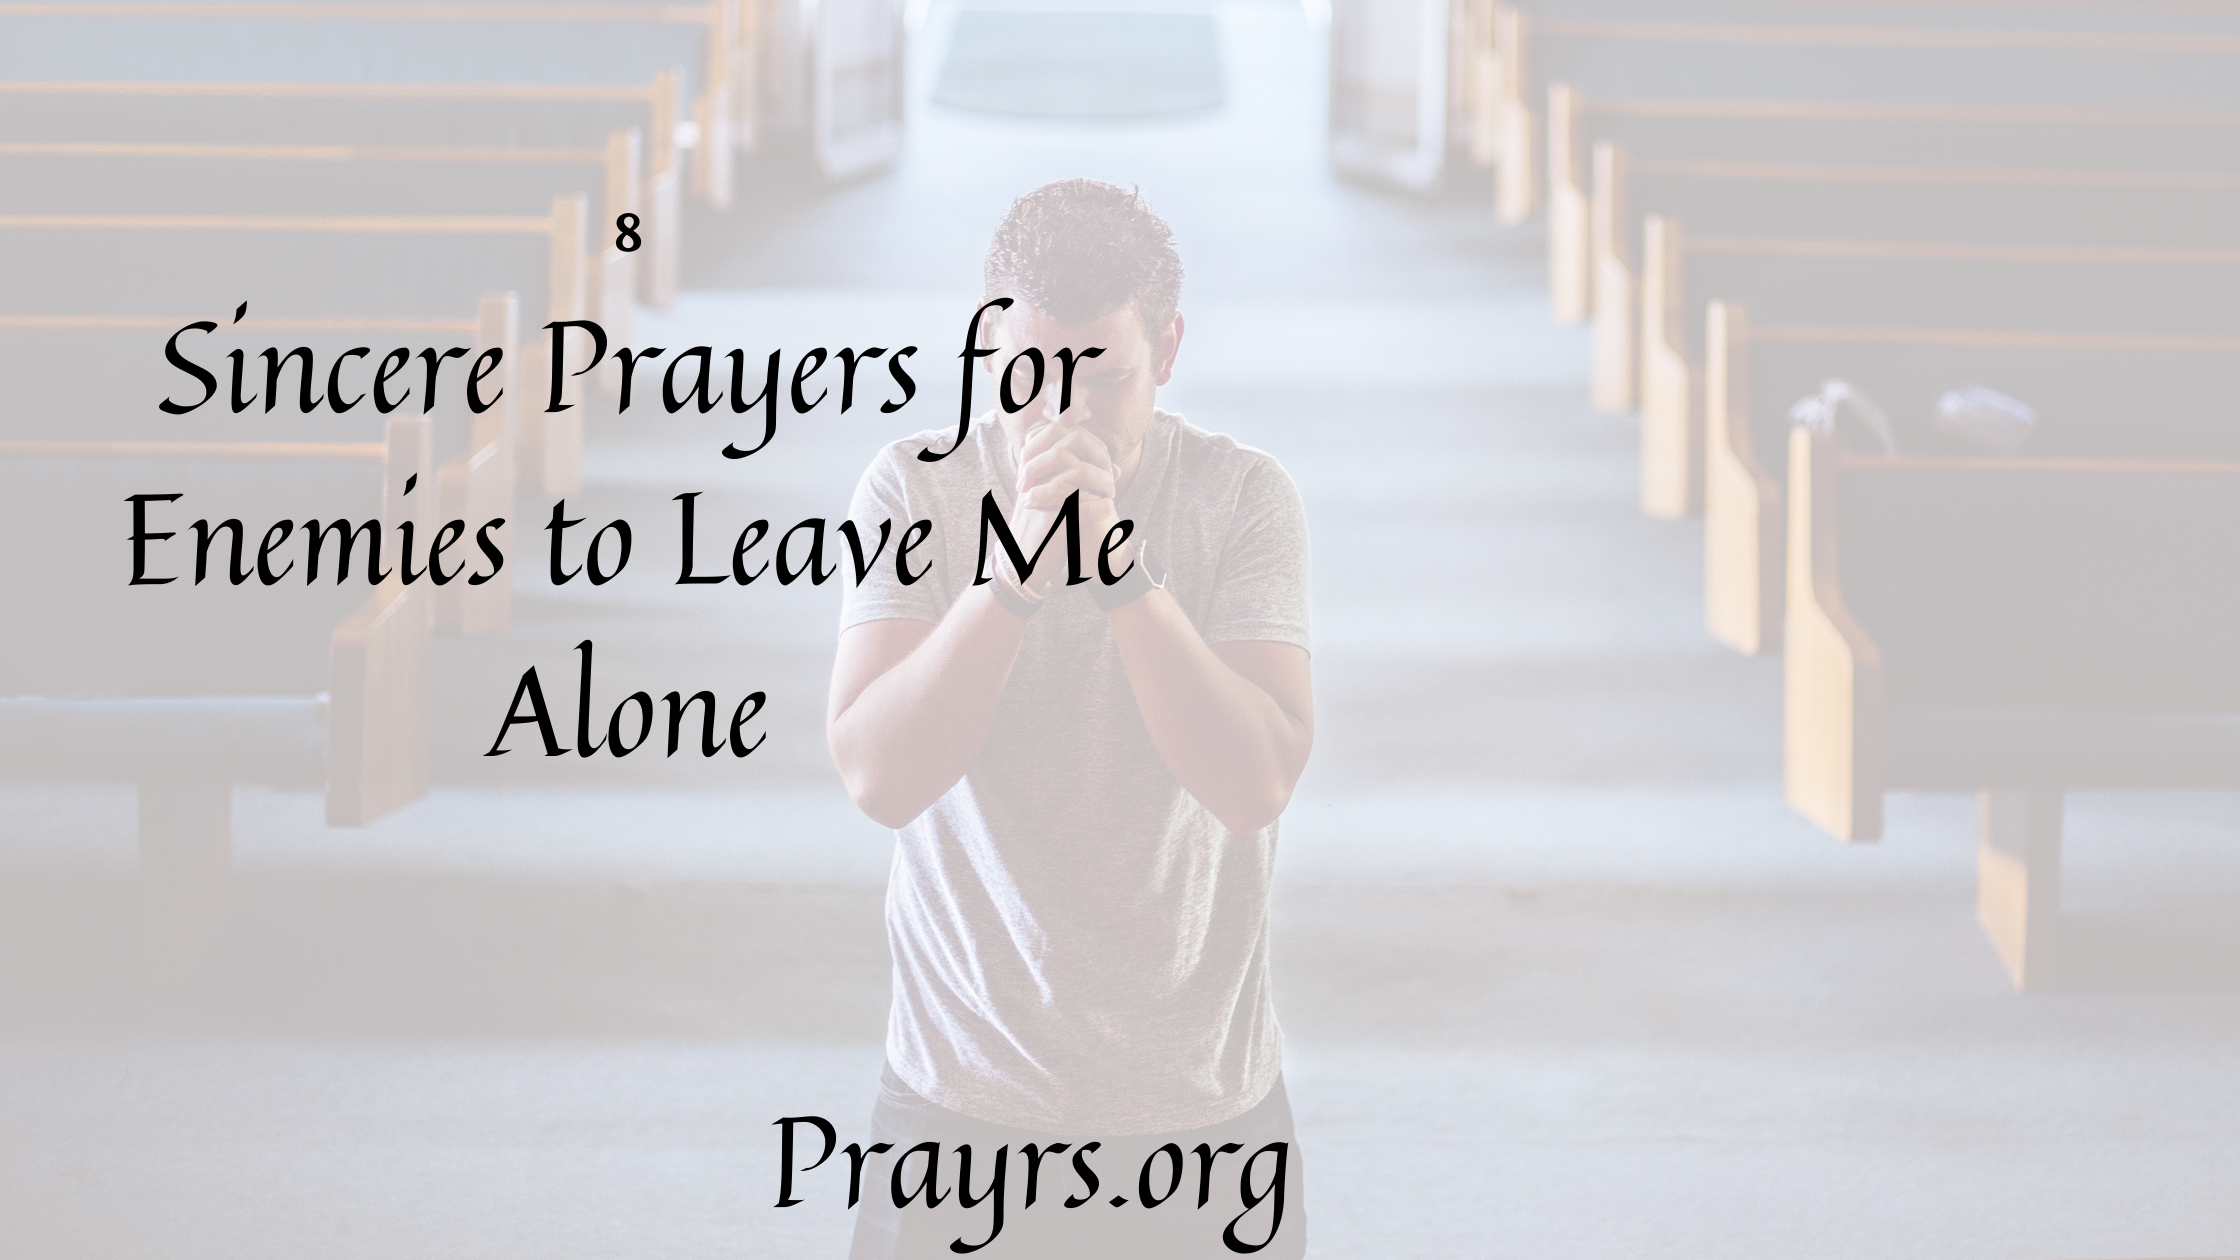 8 Sincere Prayers for Enemies to Leave Me Alone